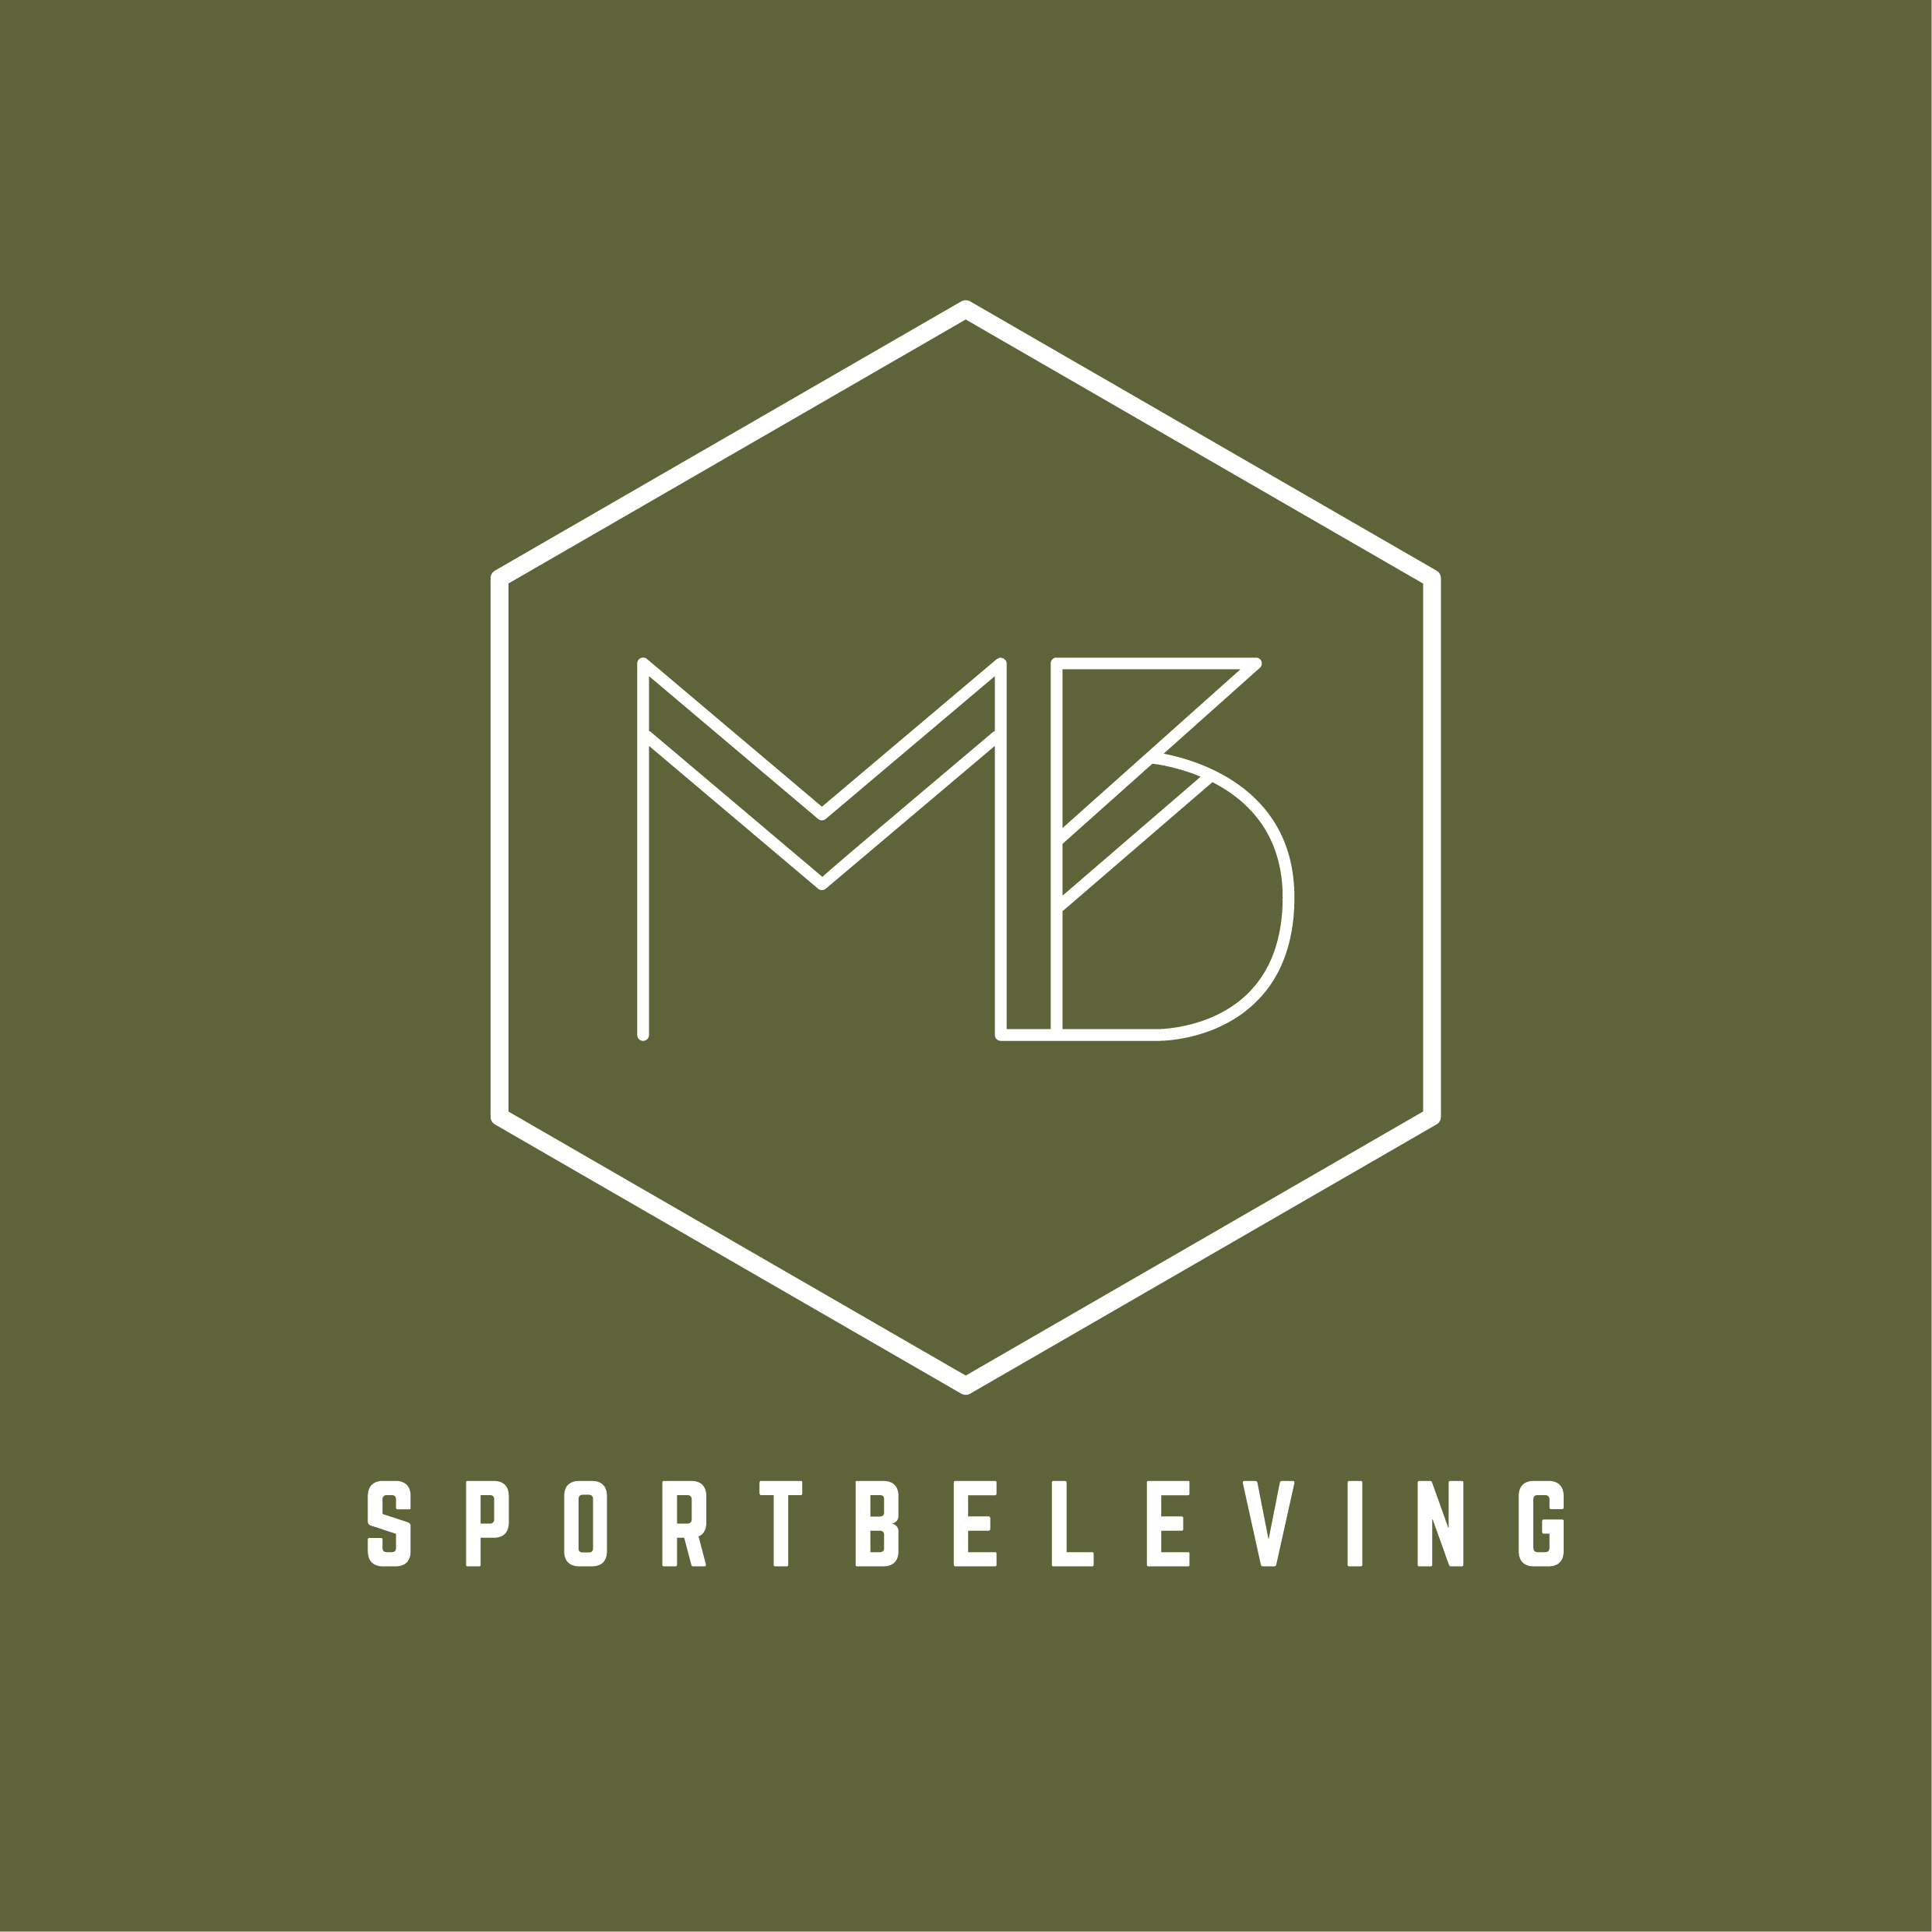 MB Sportbeleving